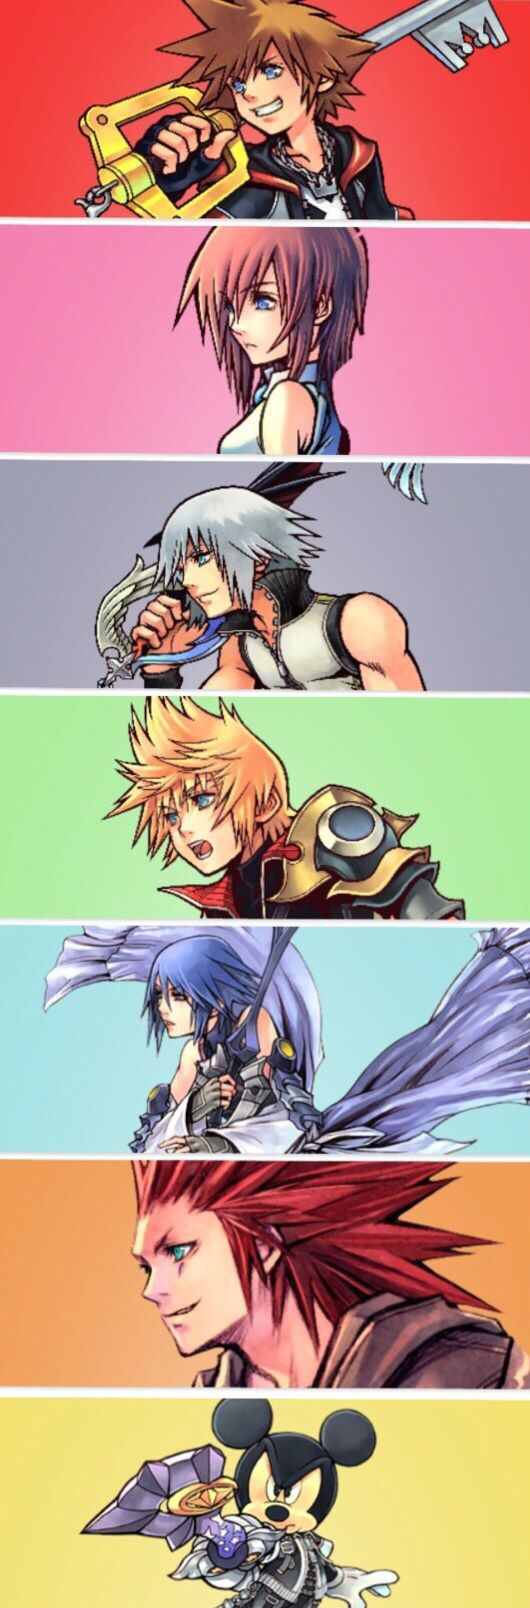 The Seven Guardians Of Light | Sora, Kairi, Riku, Ven, Aqua, Lea, King Mickey | Kingdom Hearts